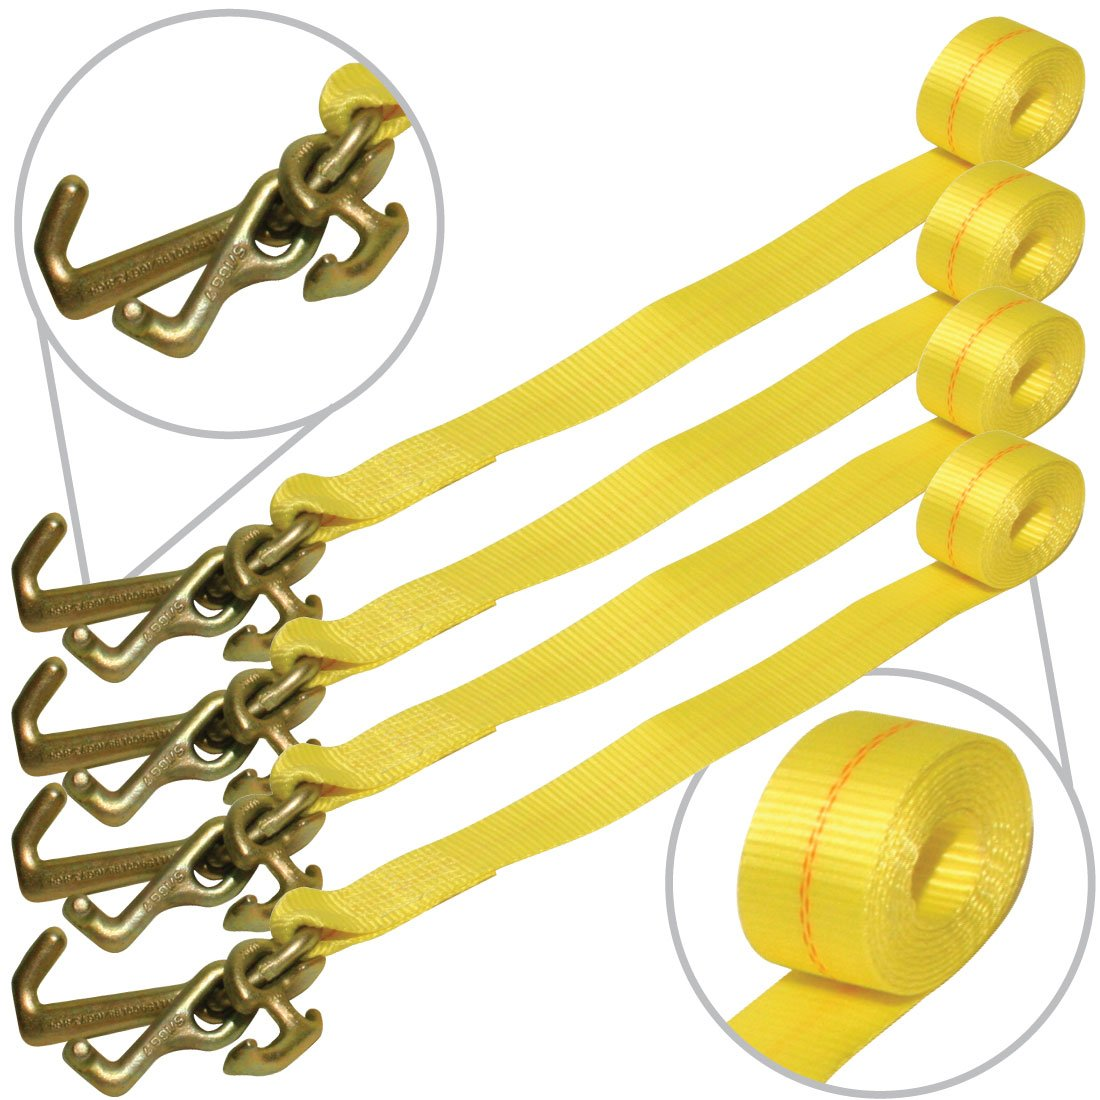 Vulcan Classic Auto Tie Down Replacement Strap with Universal Frame Hook Cluster - 3300 lbs. SWL (96'' - Pack of 4) by VULCAN